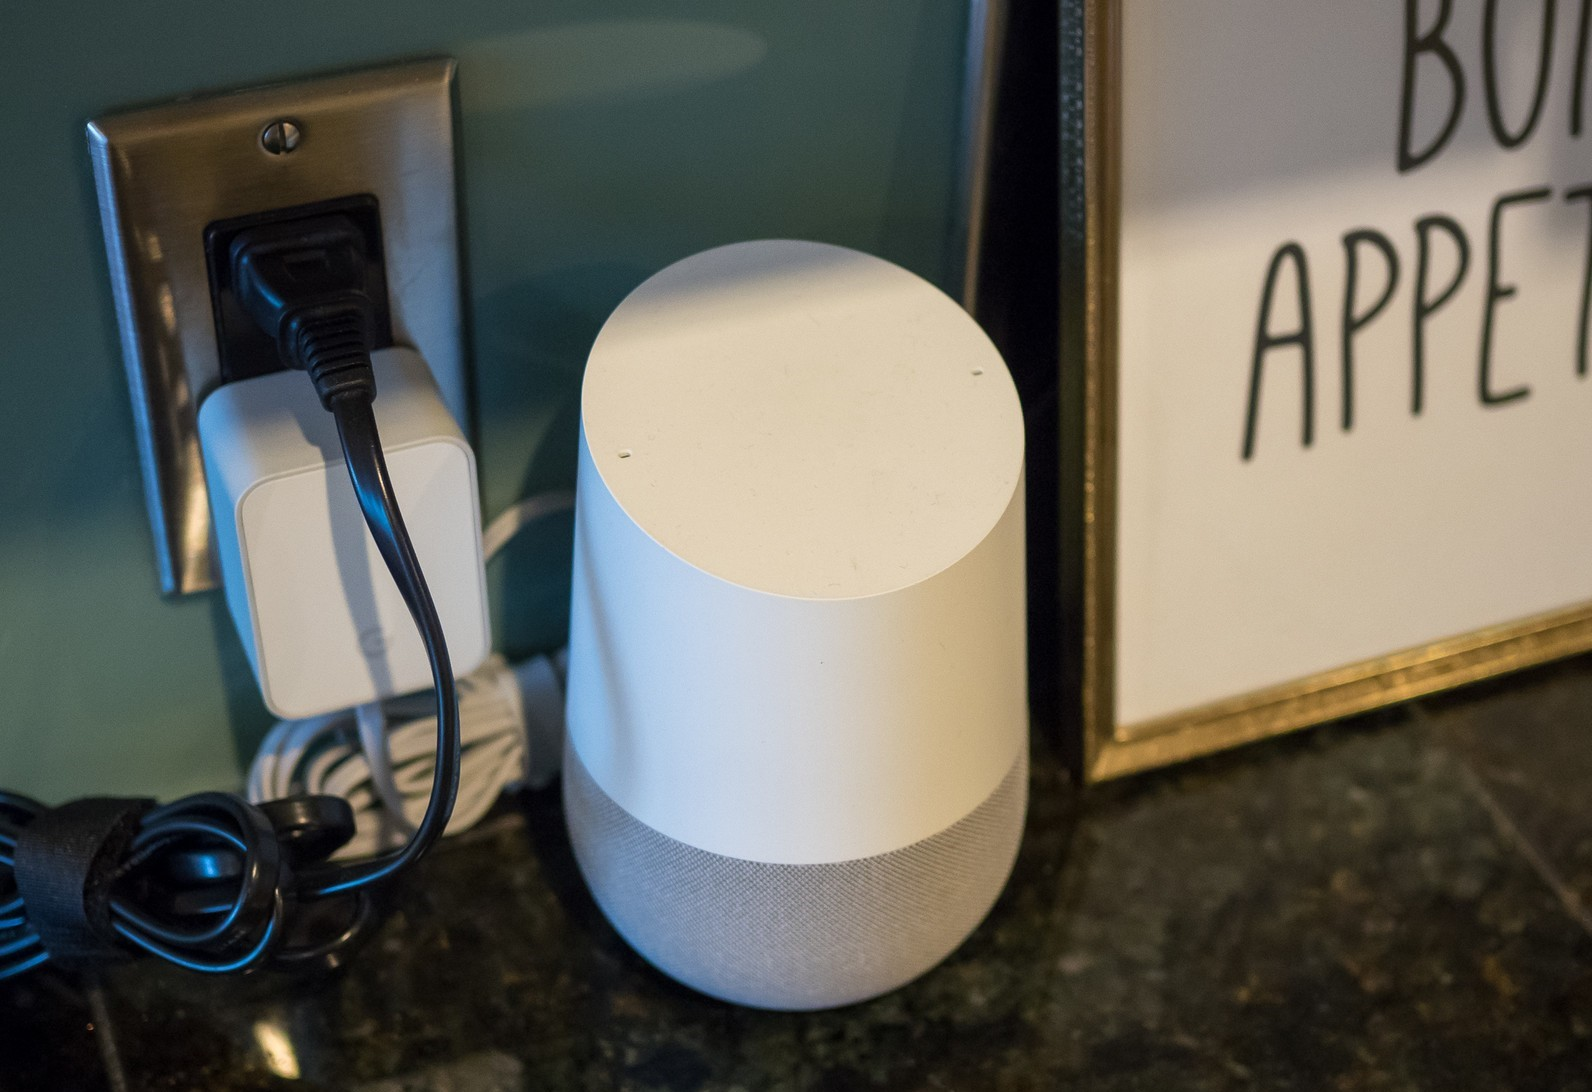 How To Enable Google Home Guest Mode To Cast Without Wi-Fi